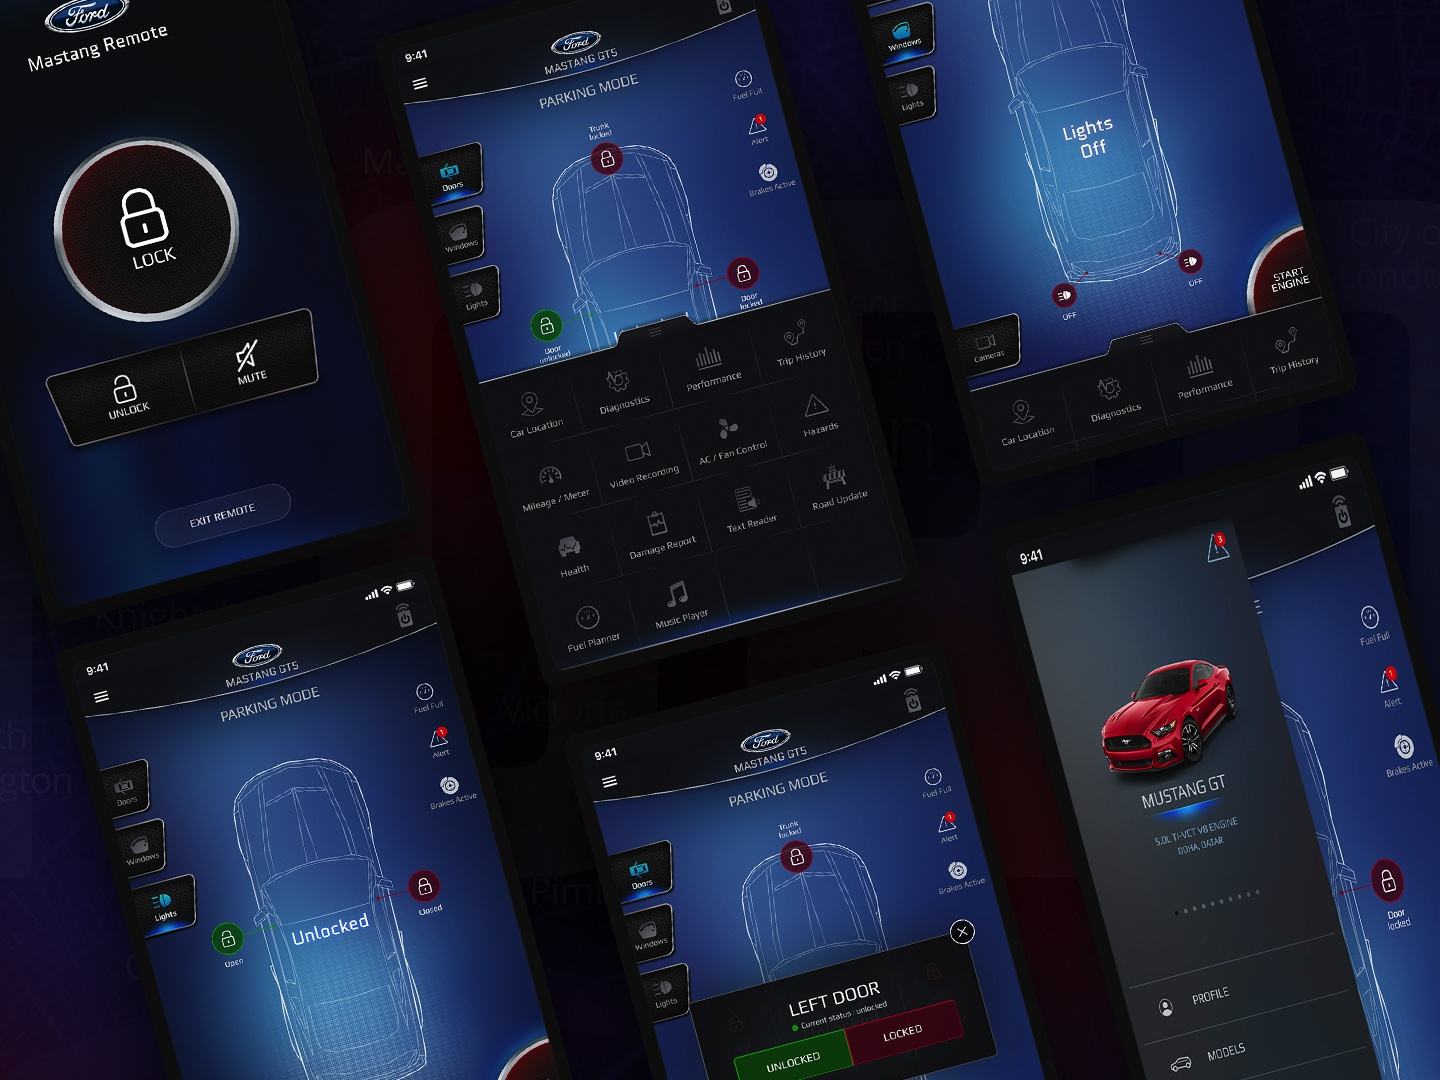 Car Remote Ipad App by Ahmed Hassan on Dribbble